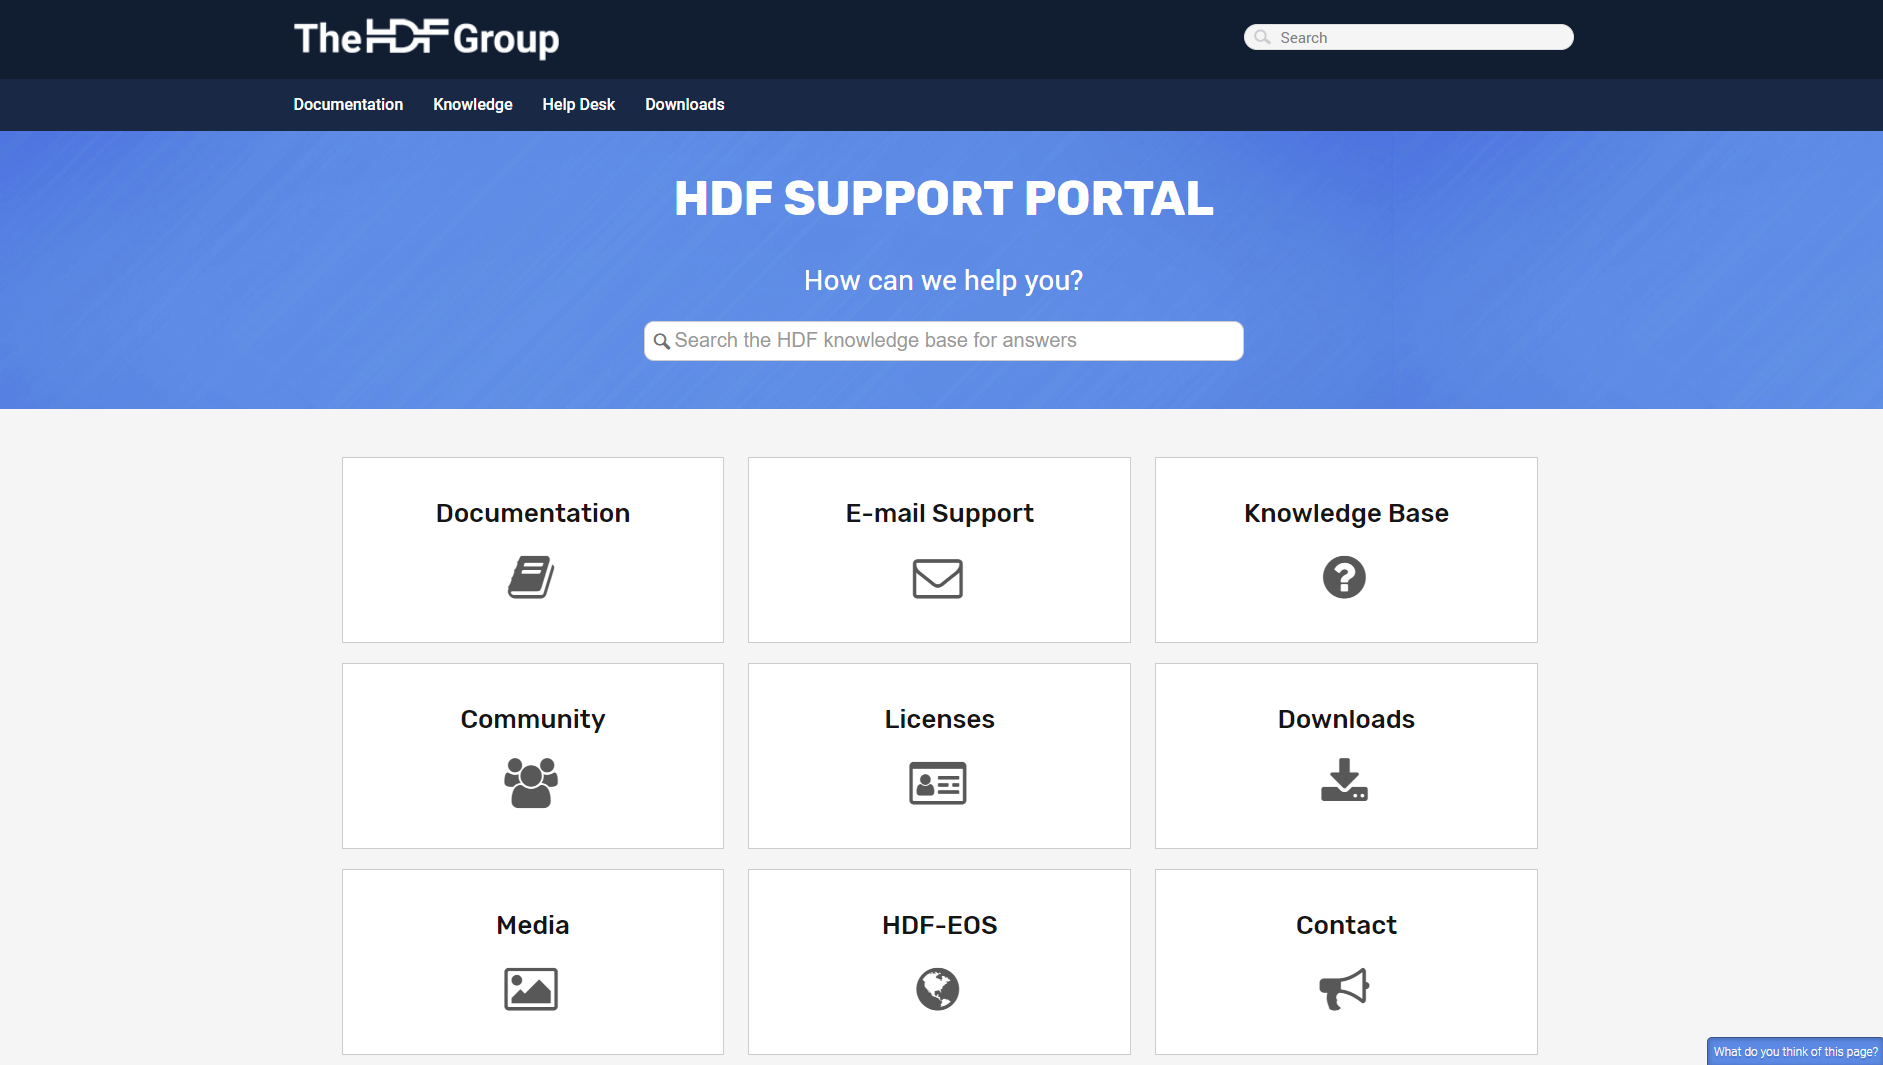 portal - The HDF Group